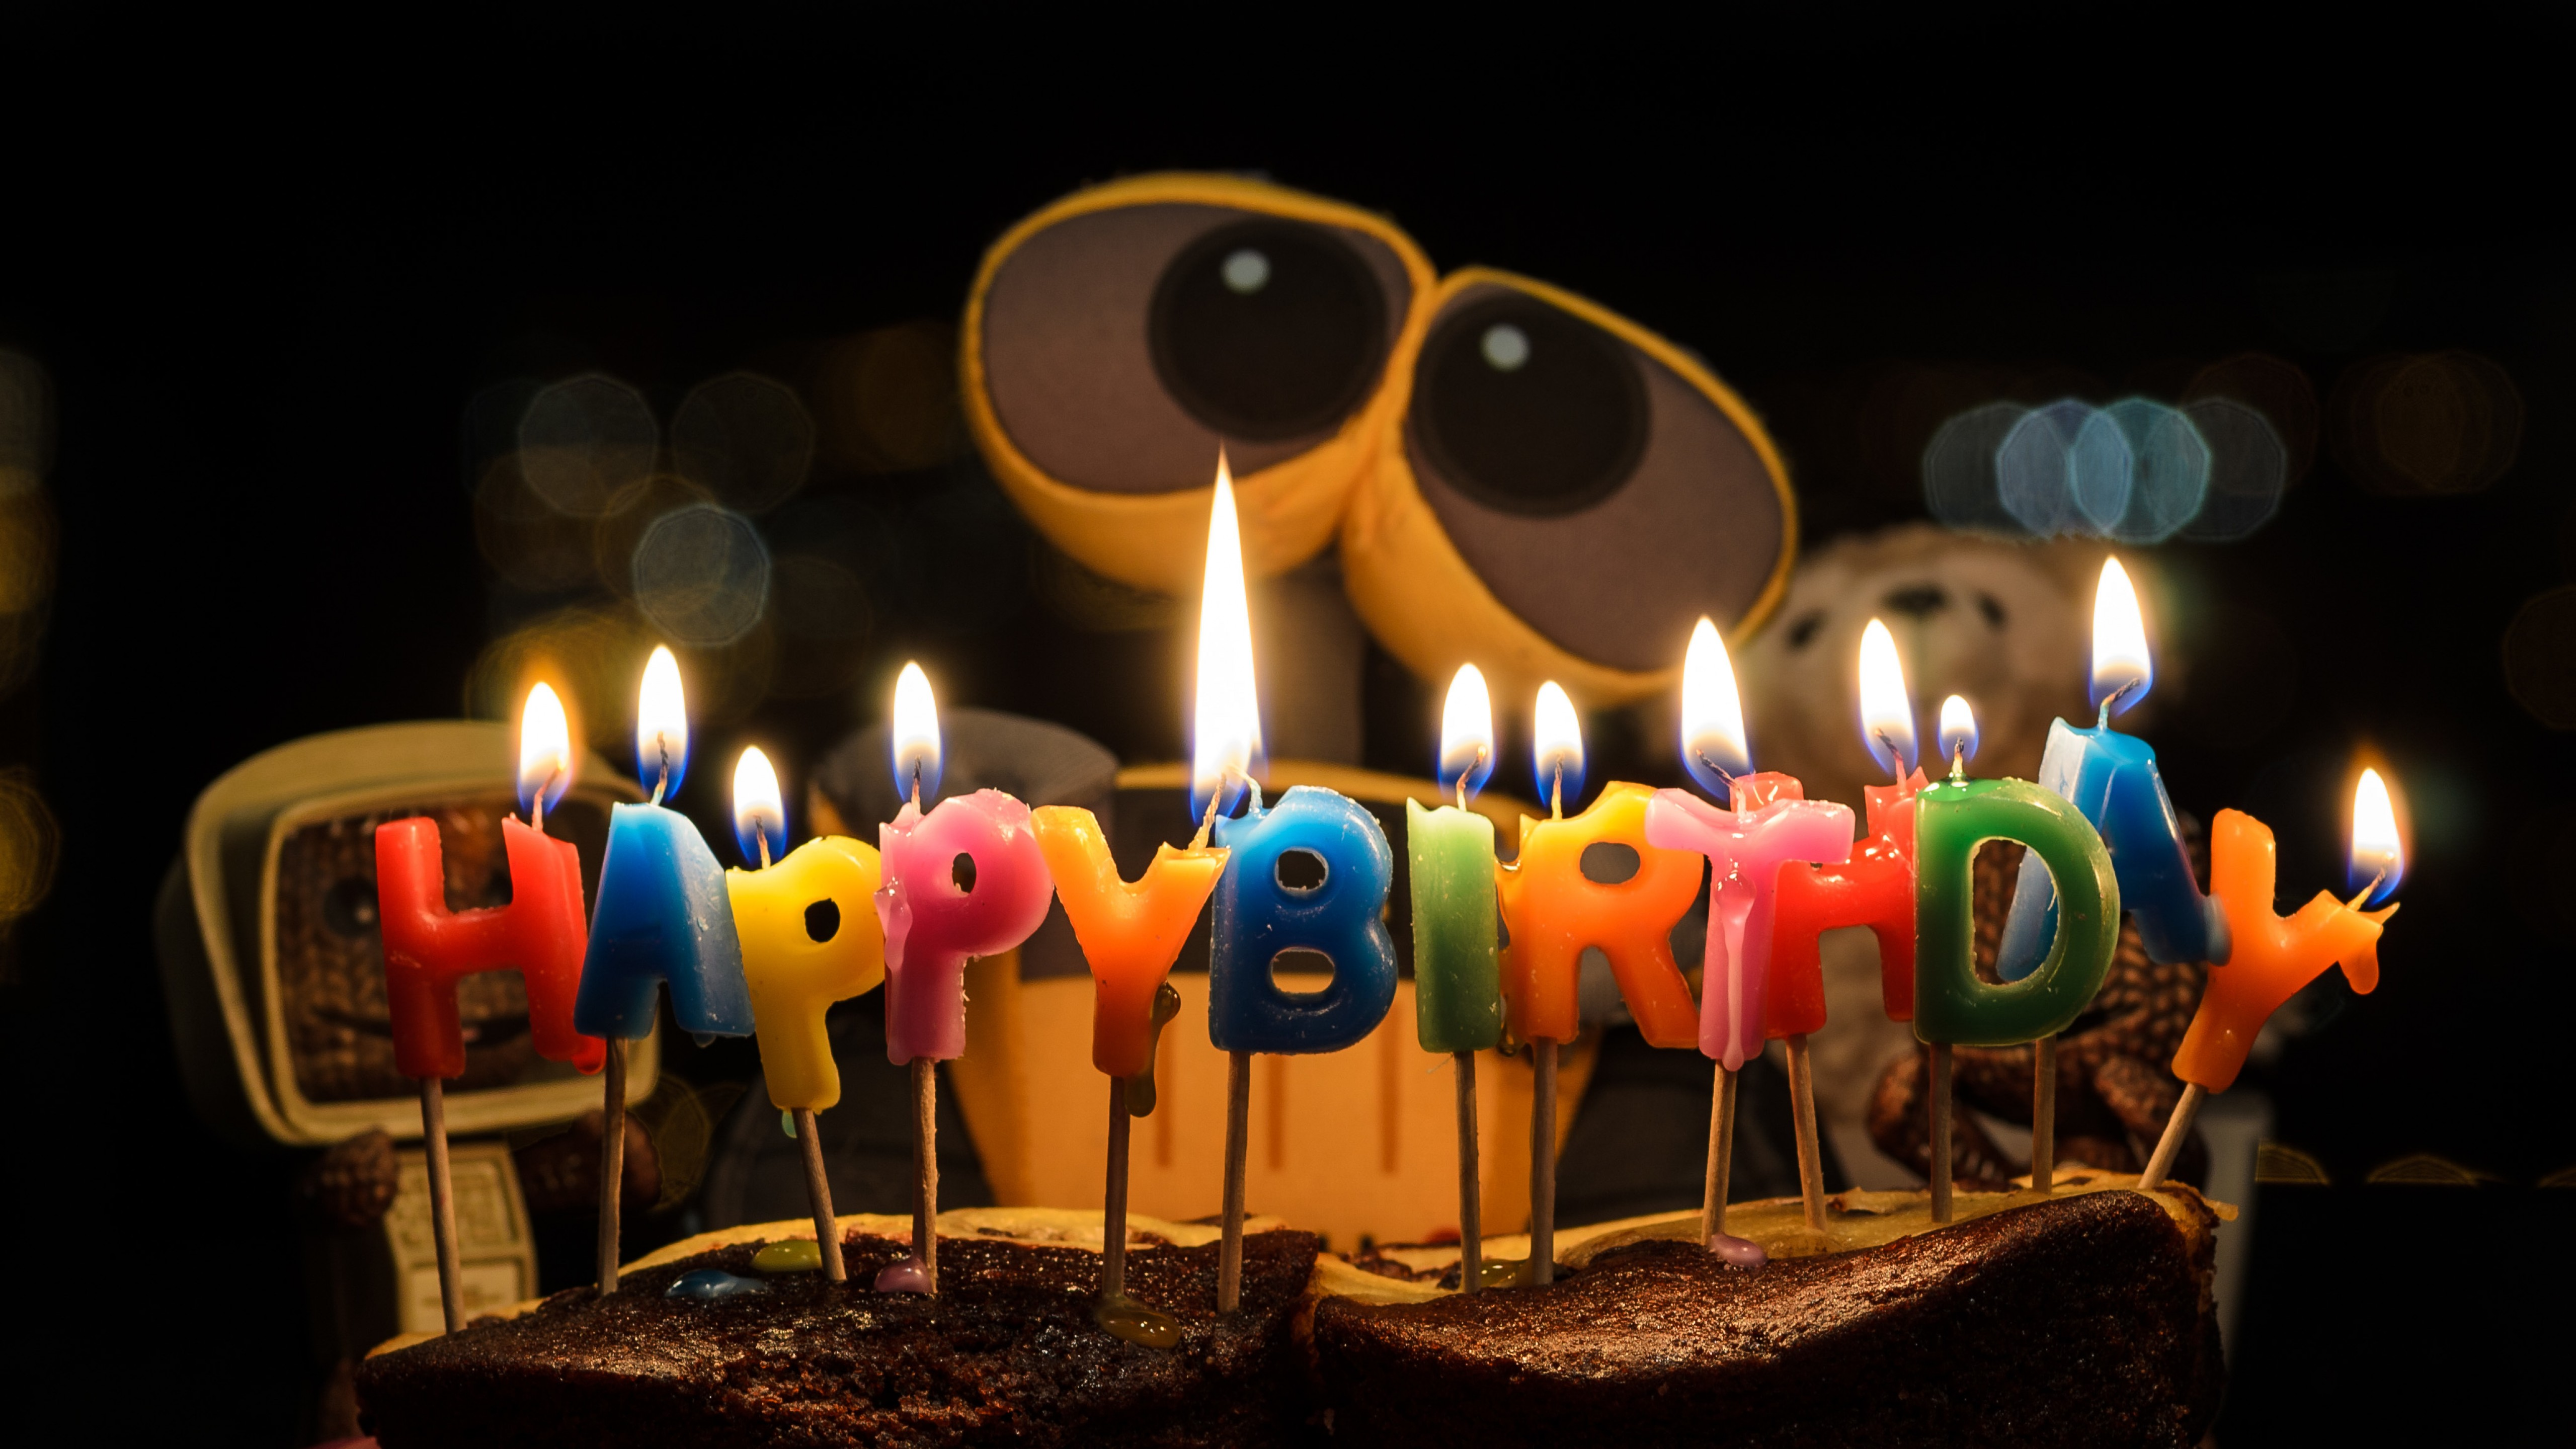 birthday candles wallpaper ; wall-e-5120x2880-happy-birthday-candle-lights-4k-6251